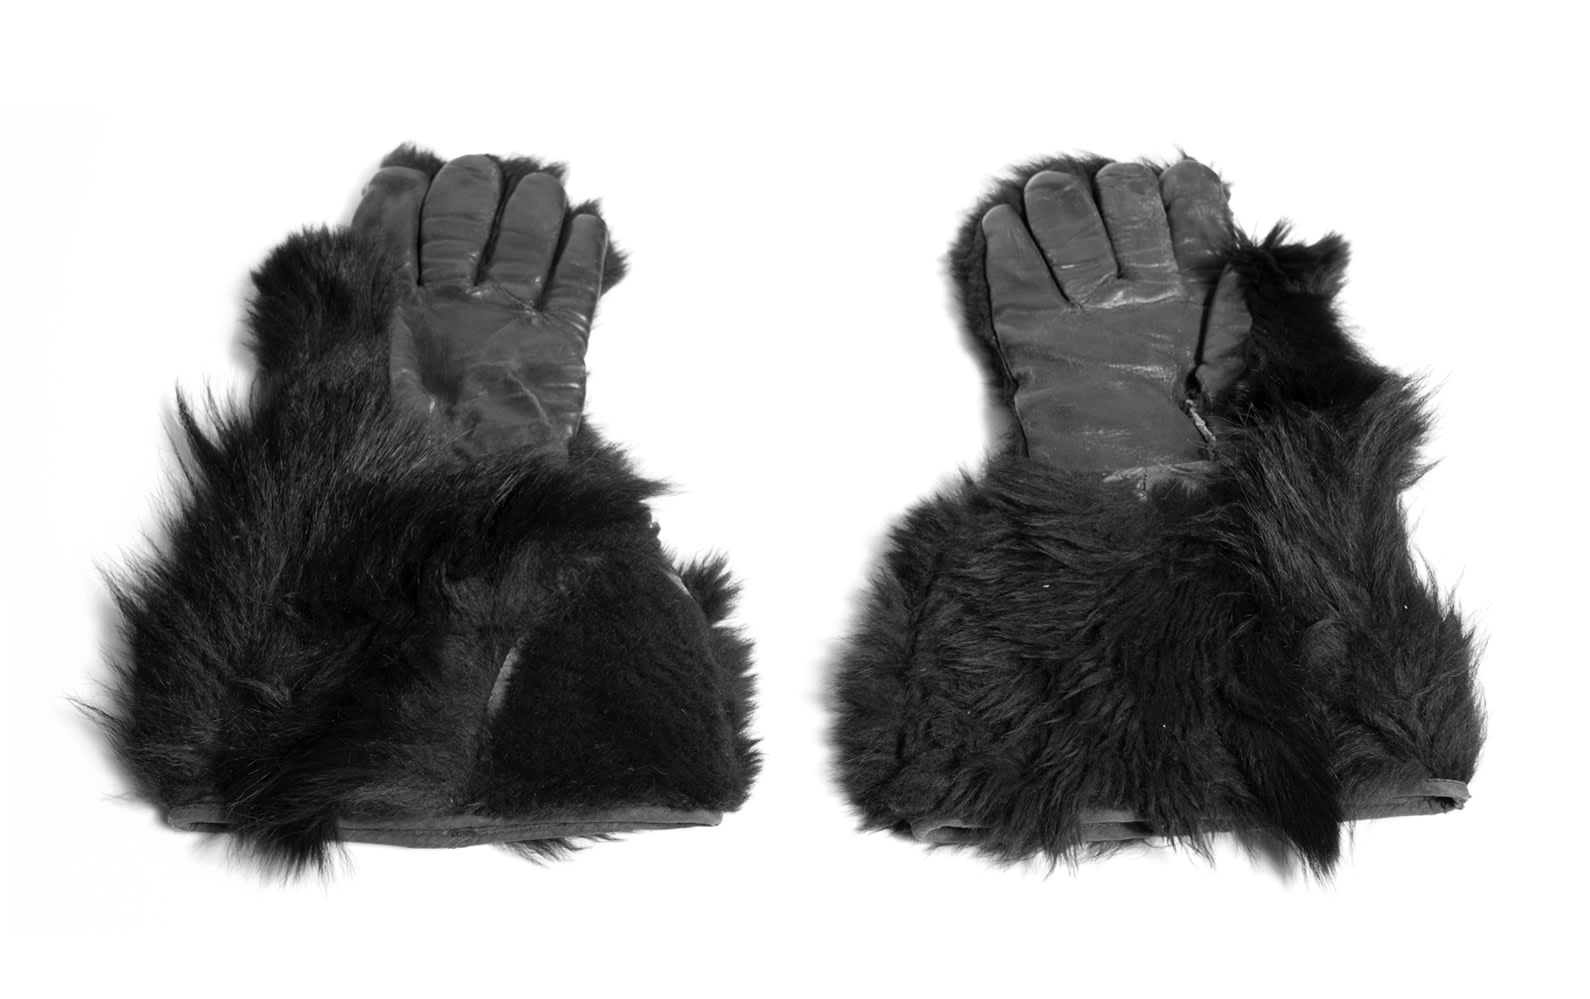 One Pair of Bear Skin Driving Gloves